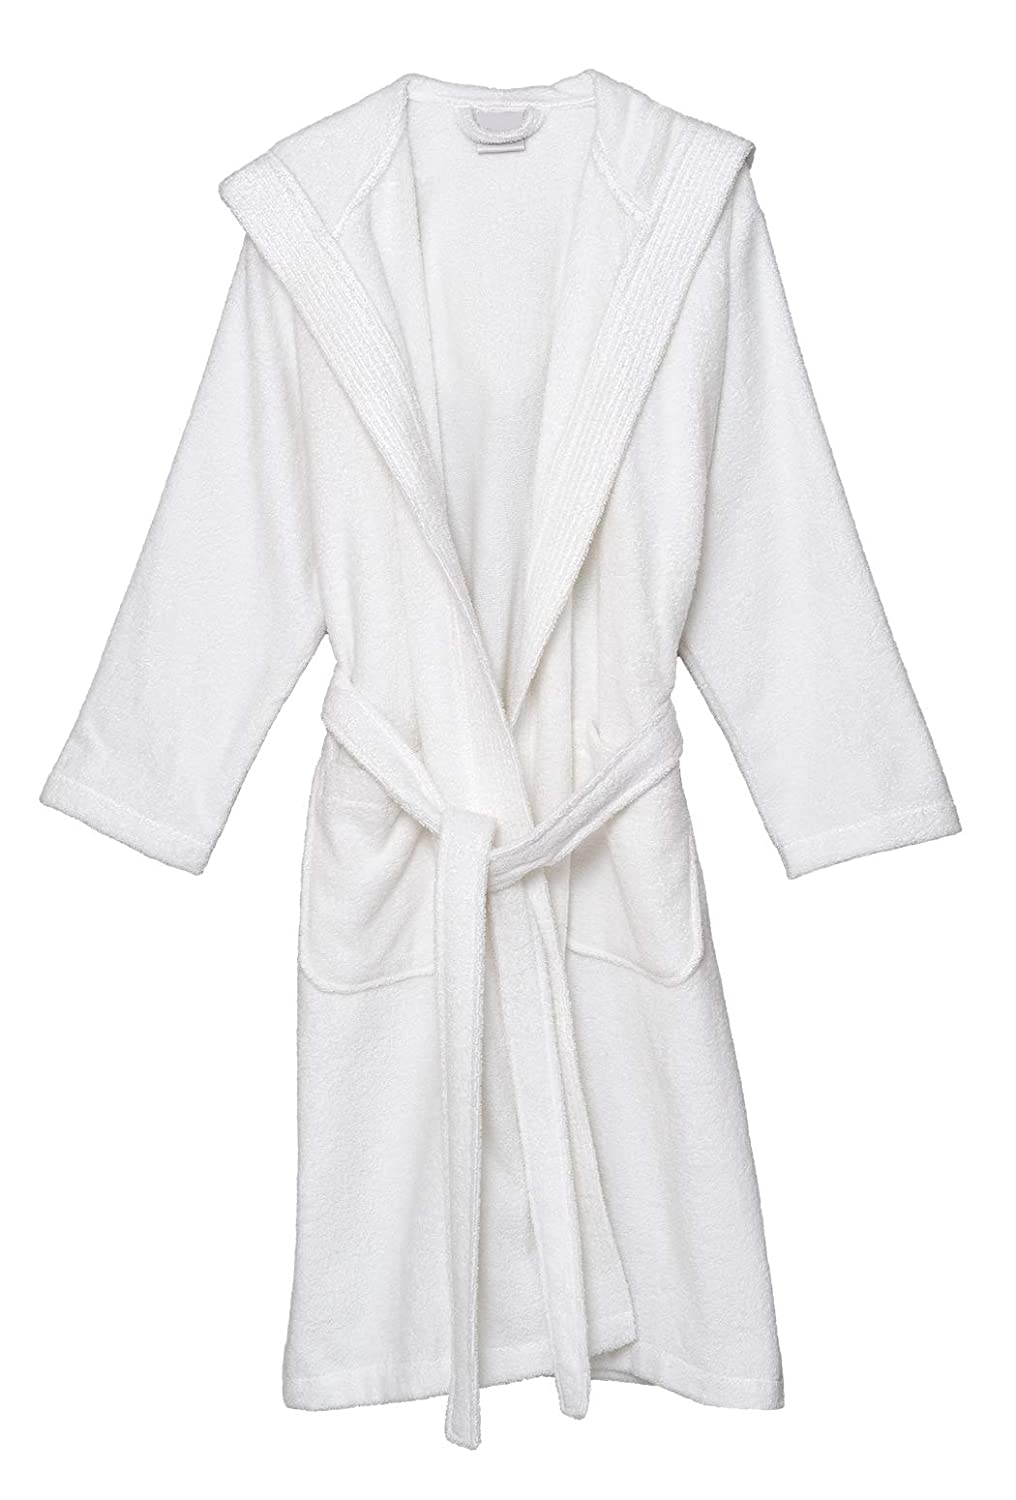 b2319e106c23 White TowelSelections TowelSelections TowelSelections Men's Hooded Robe,  Cotton Terry Cloth Bathrobe, Made in Turkey 3f53b4